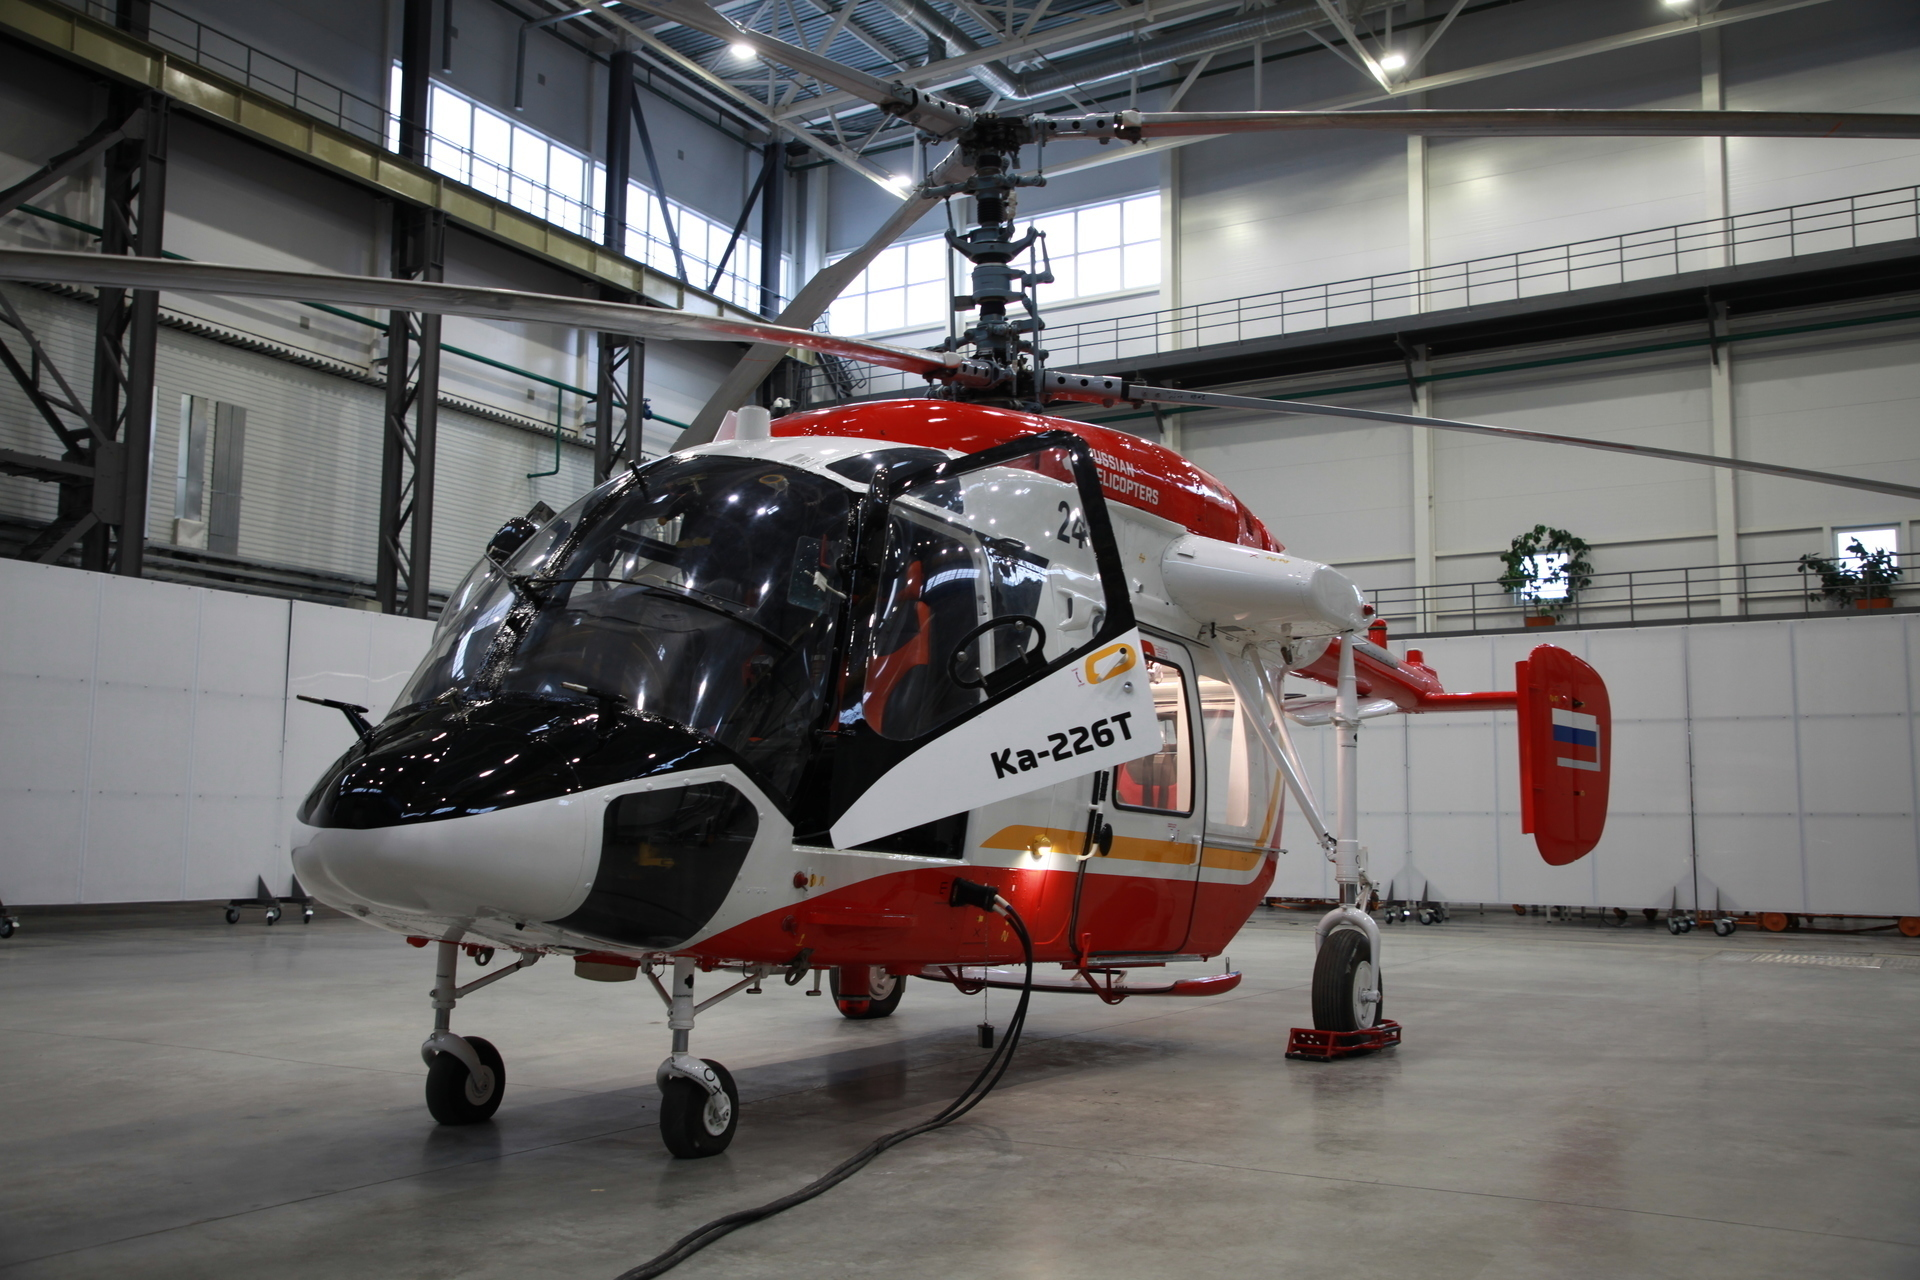 Russian Helicopters conducted a conference with the Indian suppliers for the Ka-226T project